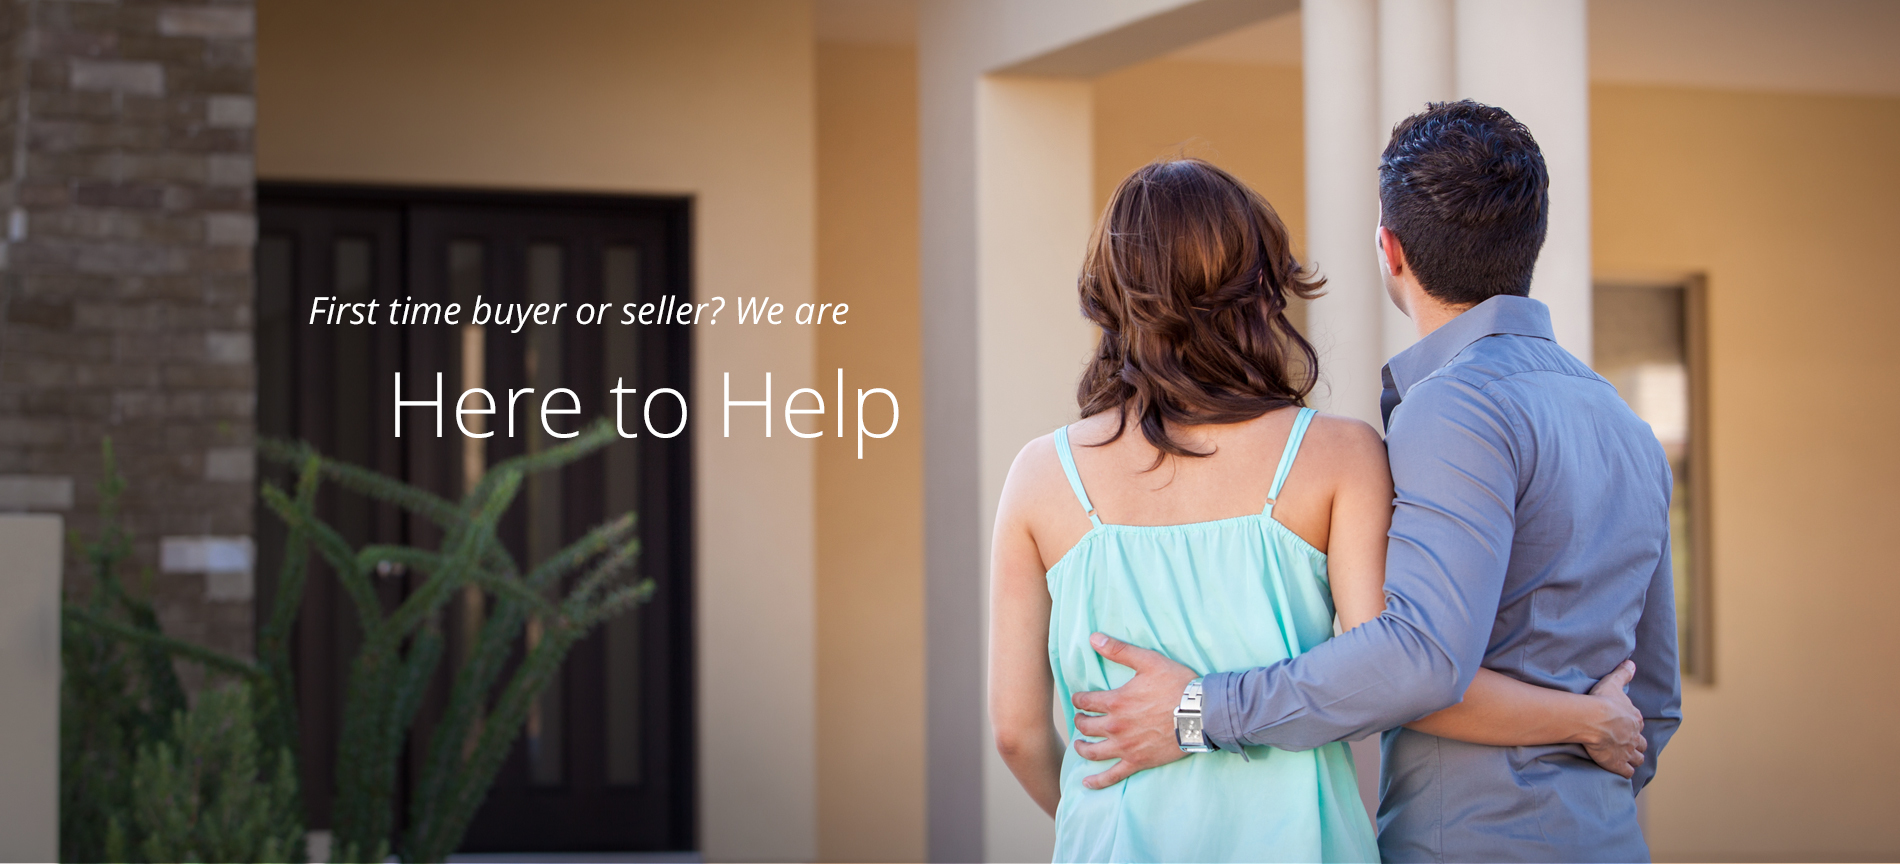 First time buyer or sell? We are here to help.